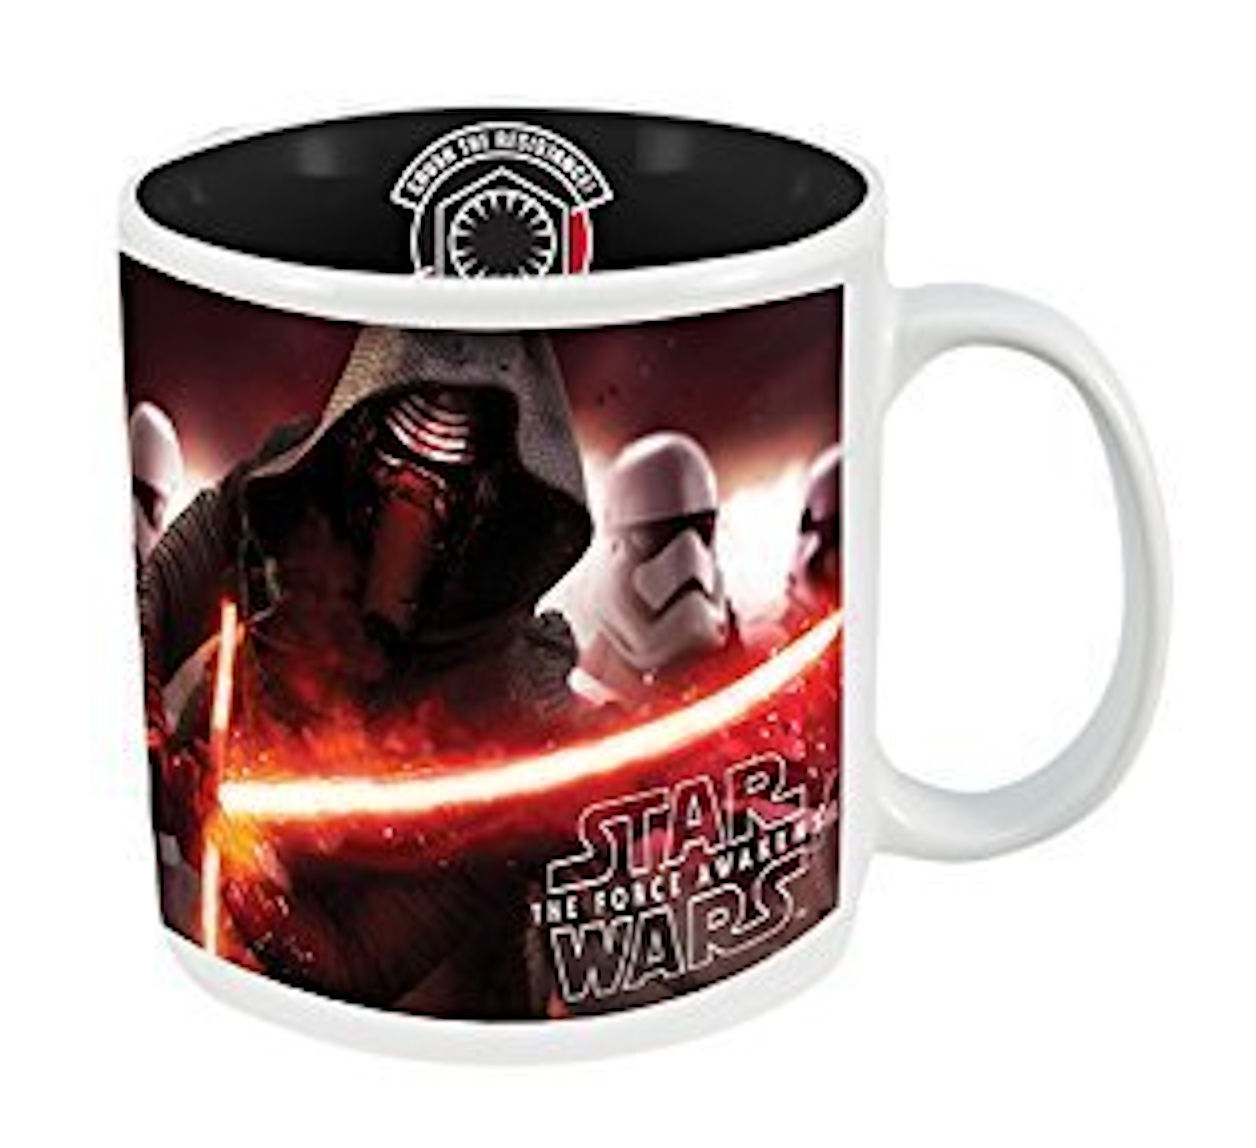 Star Wars Dark Side Coffee Mug Featuring Kylo Ren